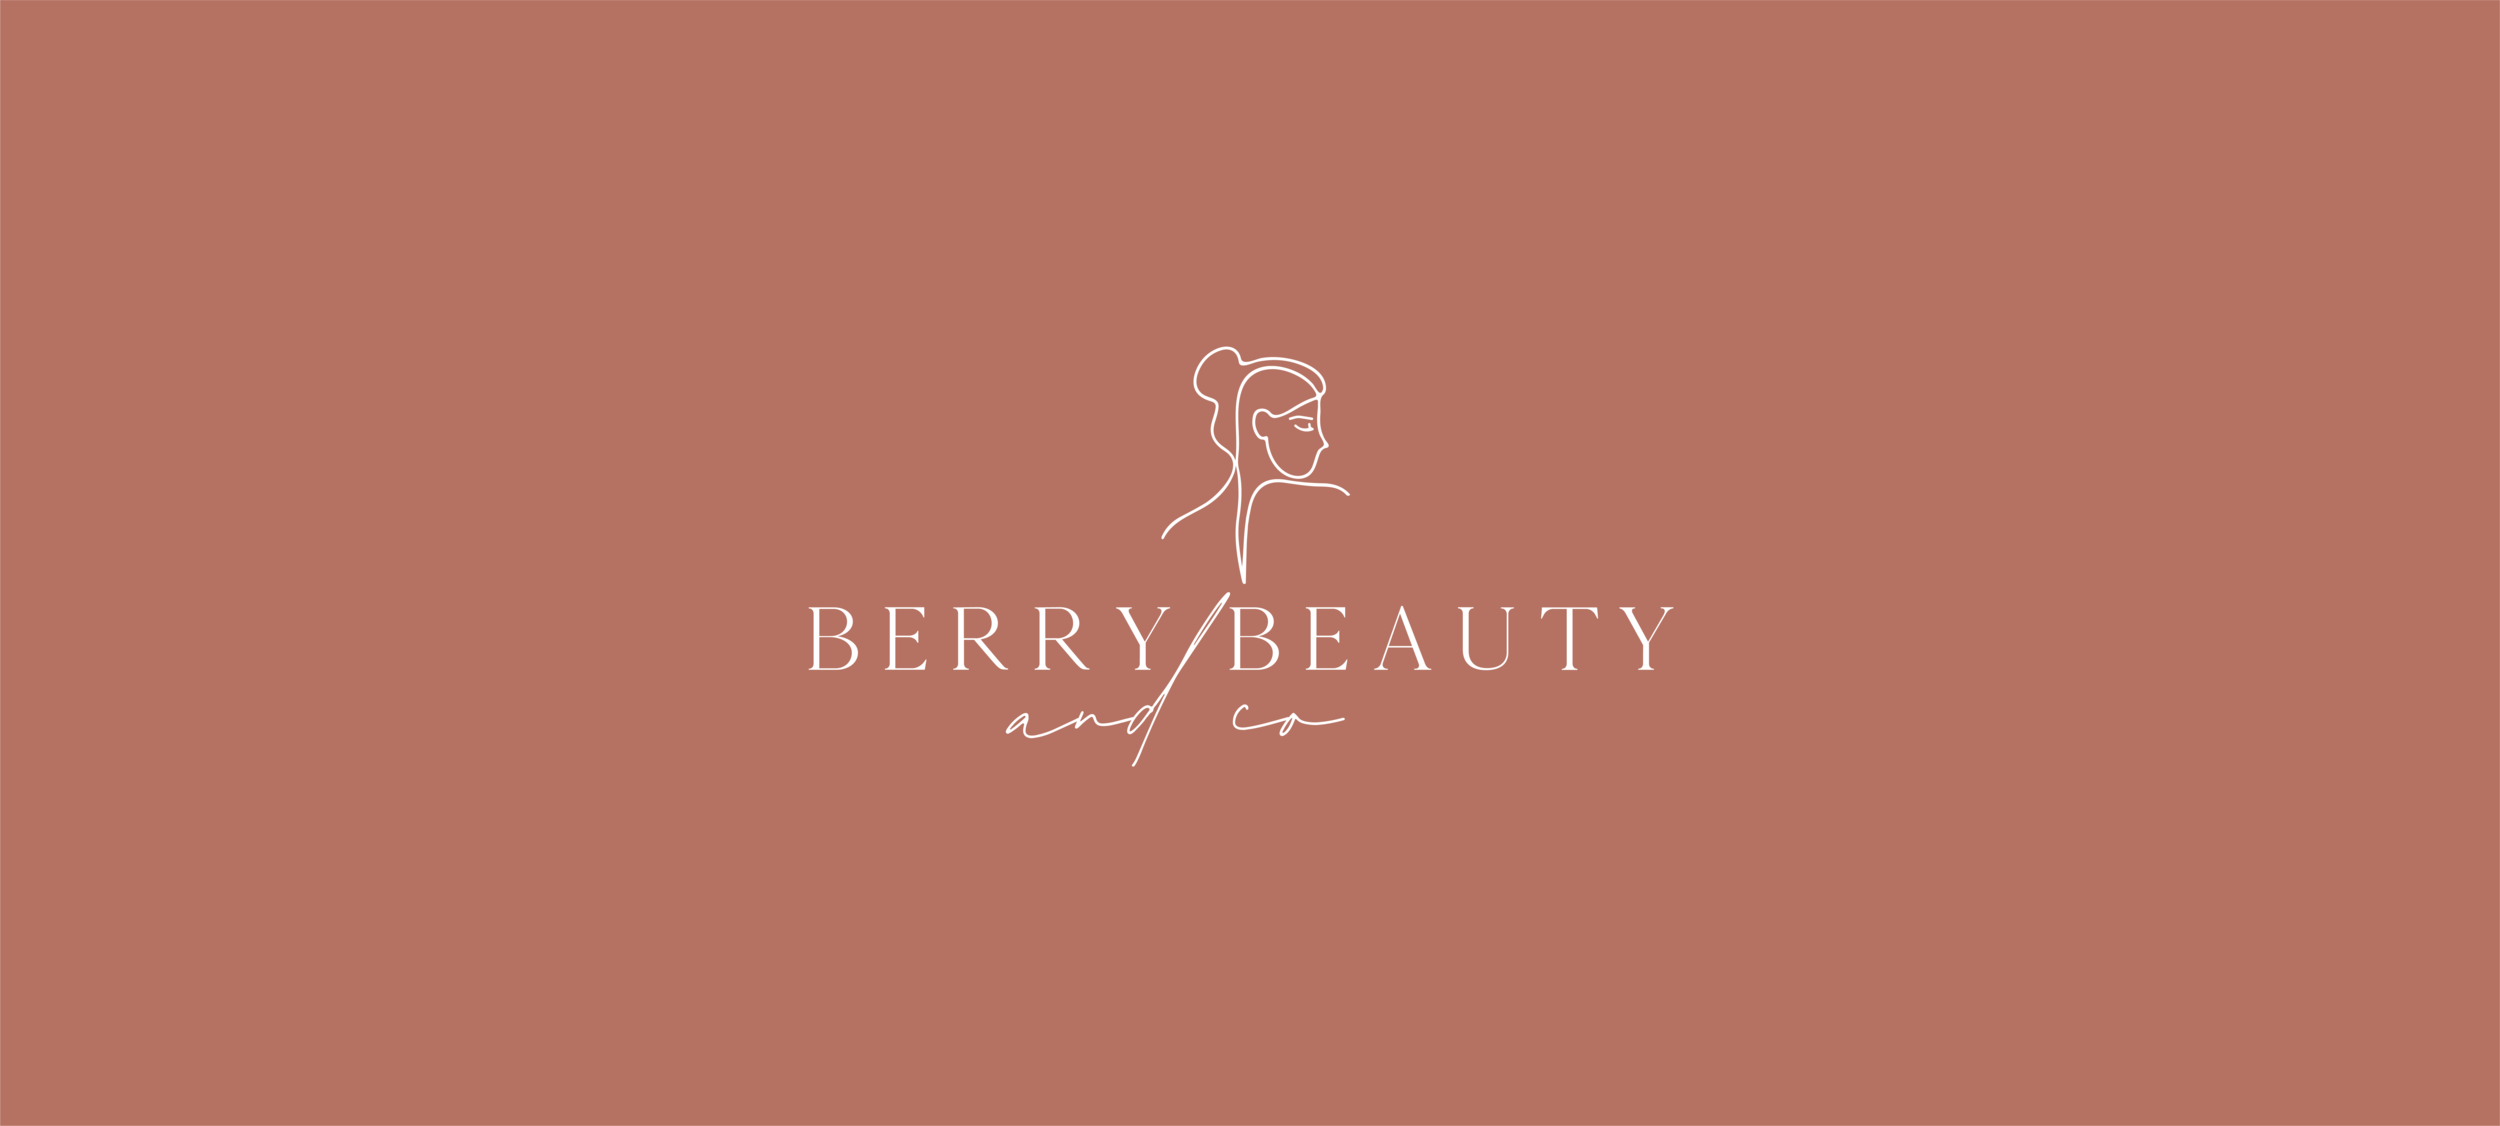 Berry Beauty & Co - by January Made Design